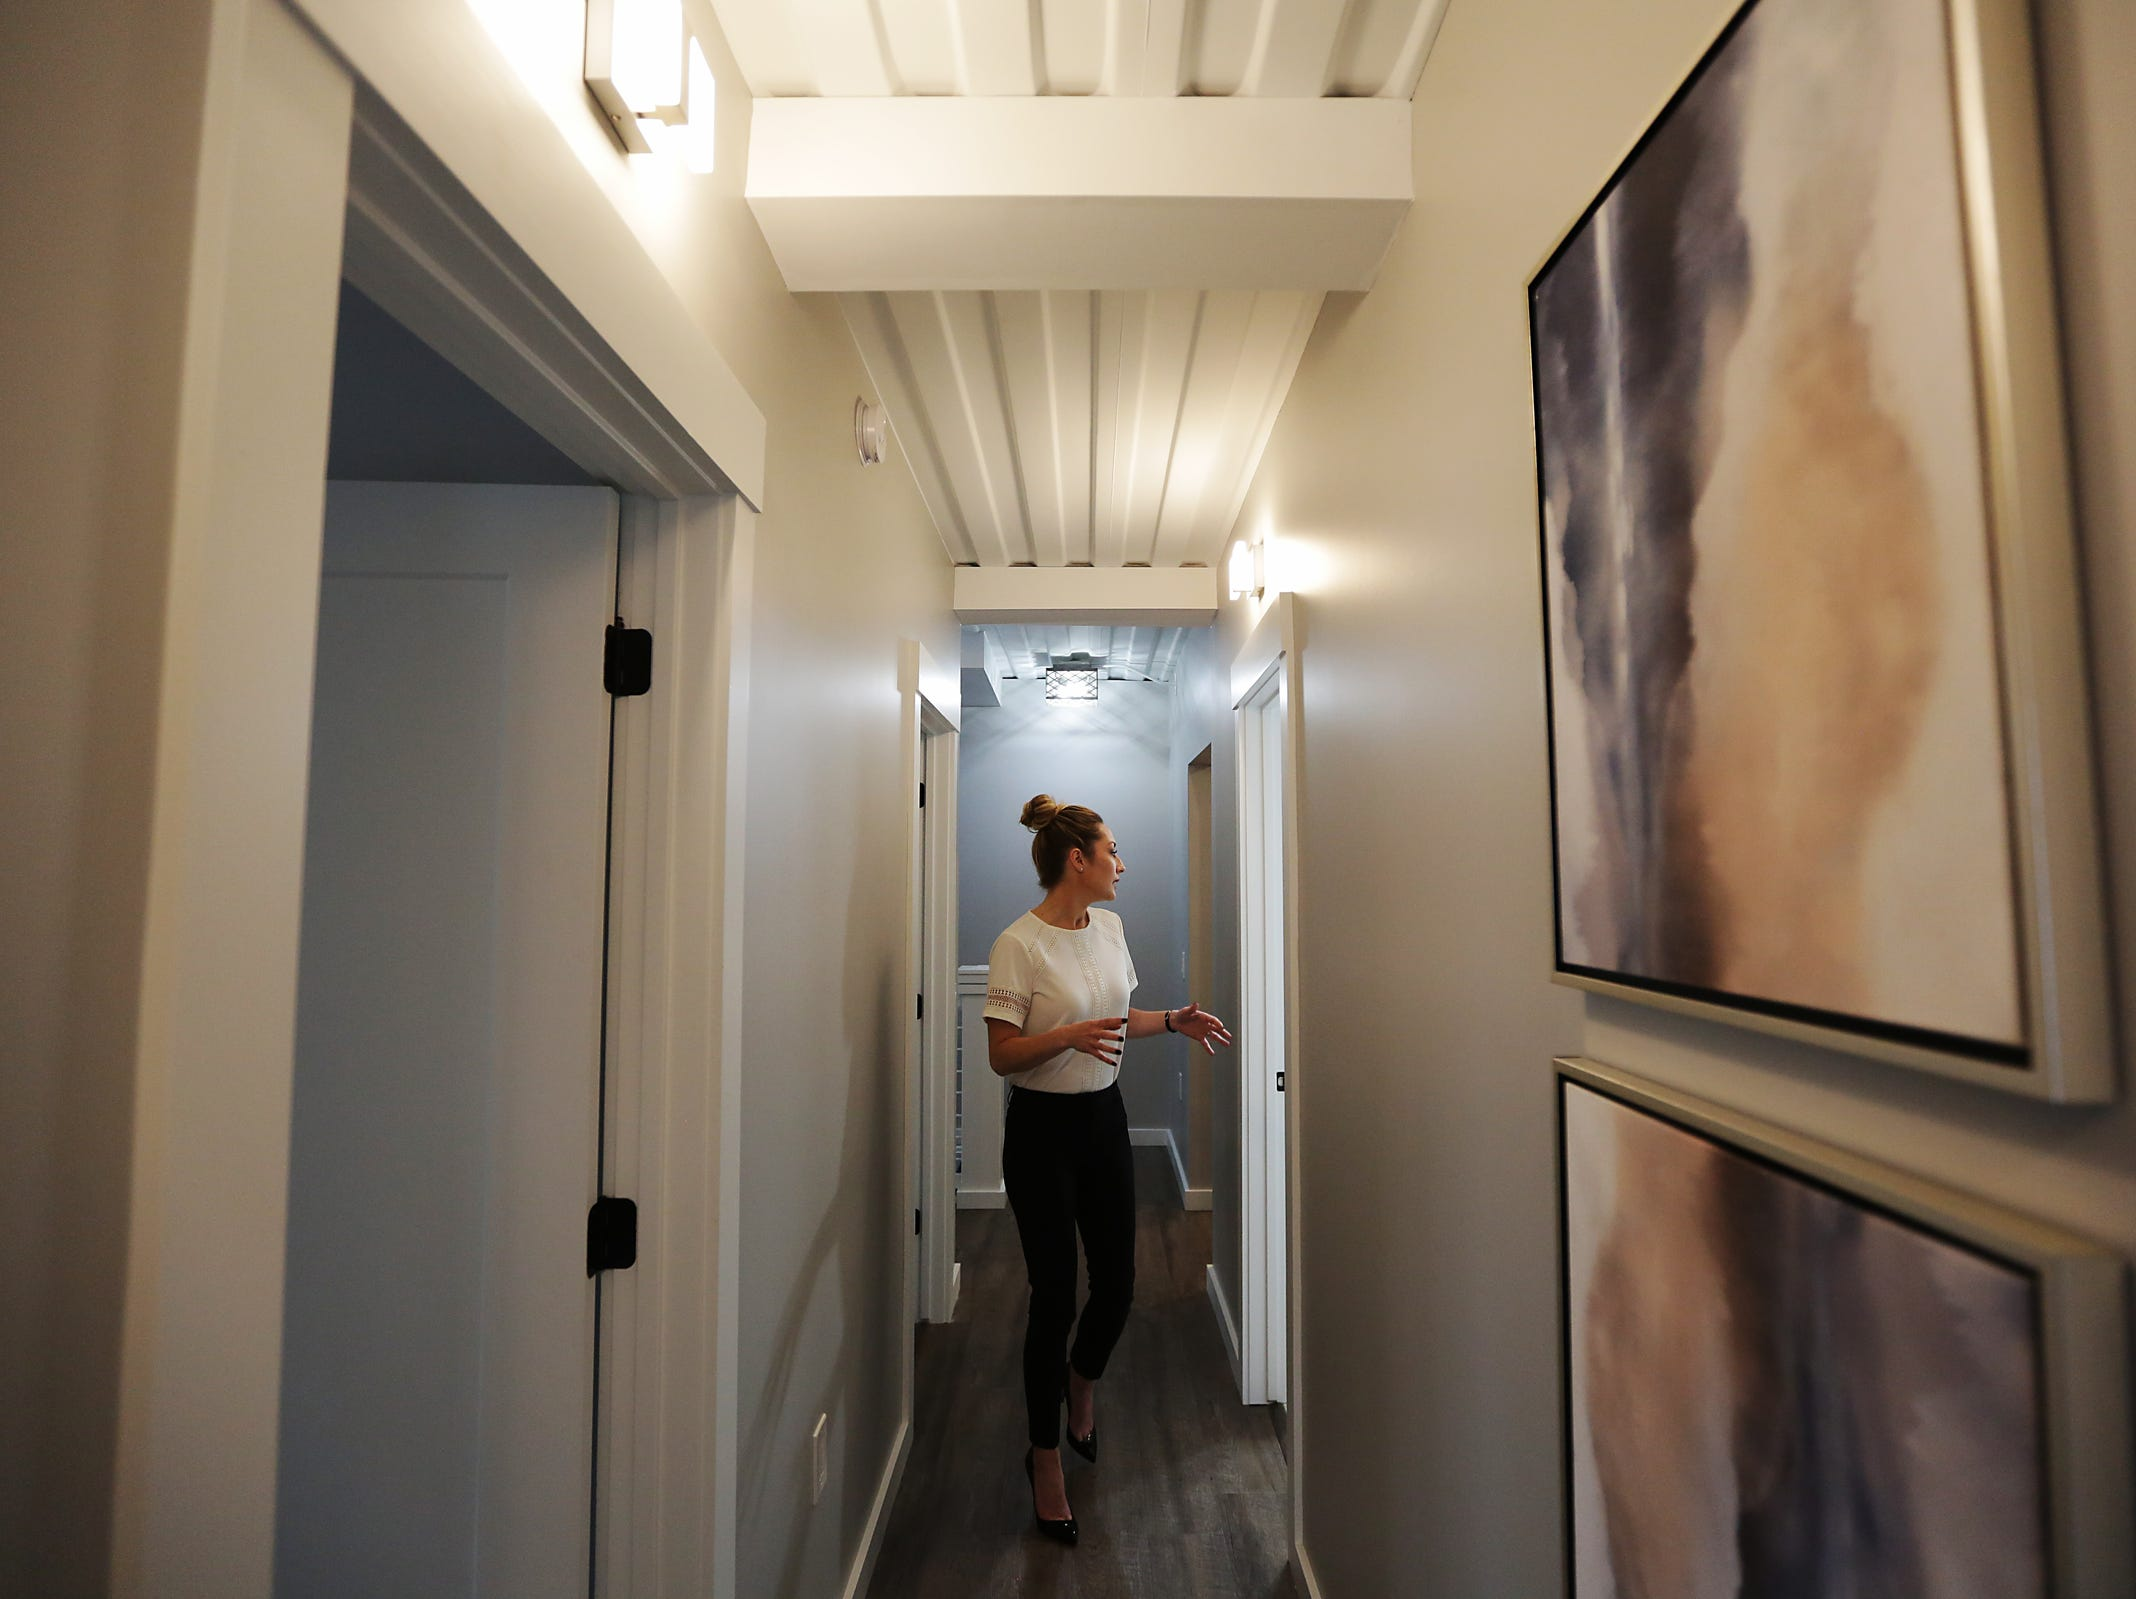 The shipping container home features 9-foot ceilings seen in the hallway leading to the bedrooms on the first floor, photographed on Thursday, March 14, 2019.